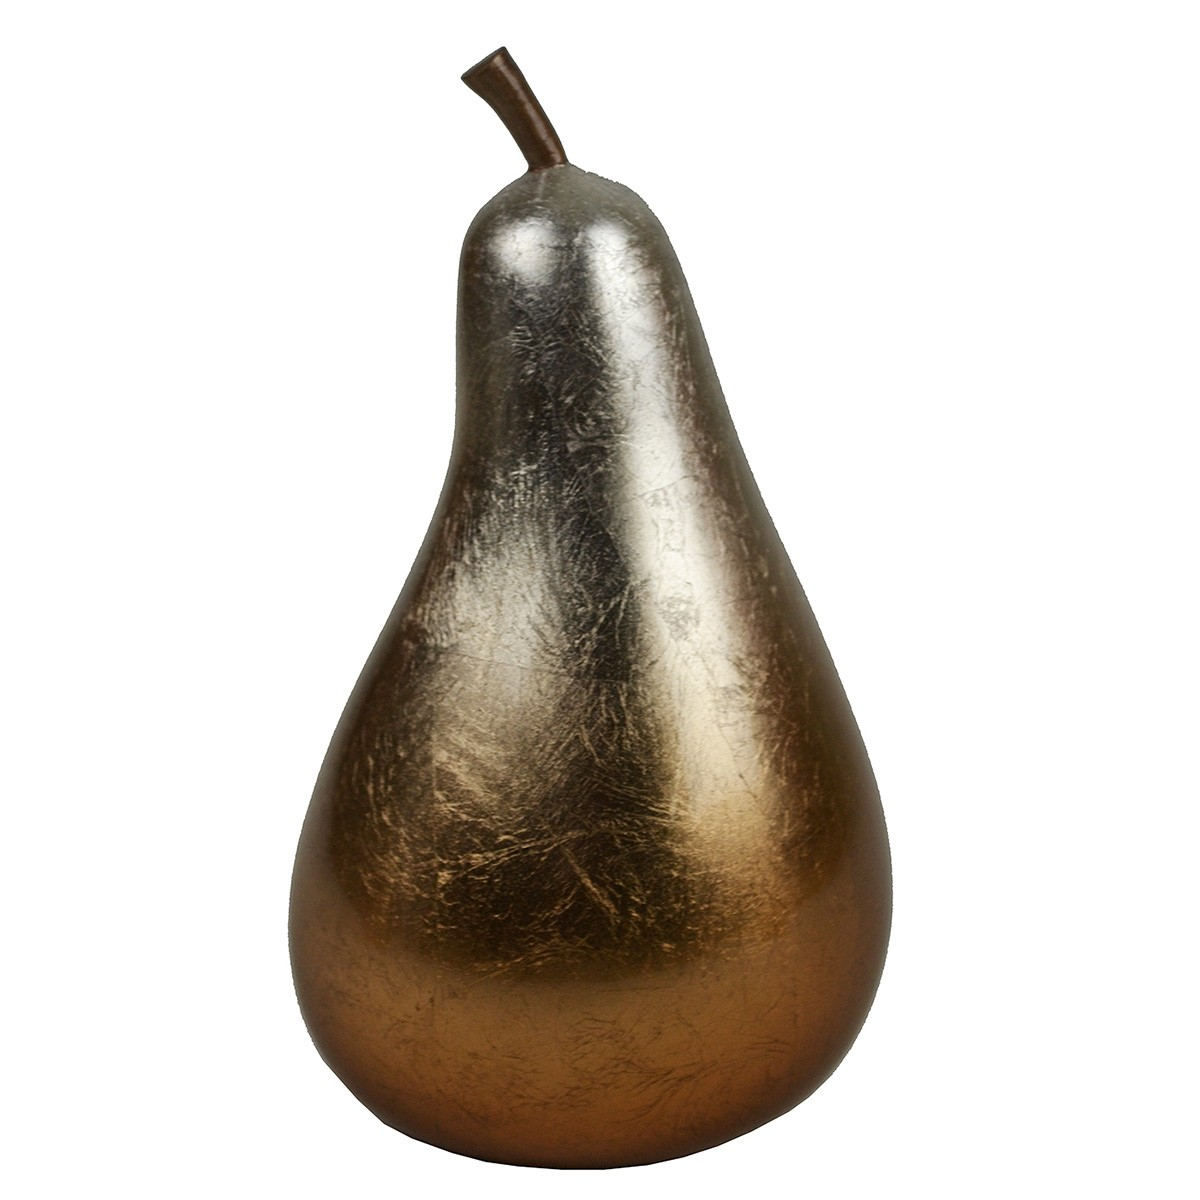 Parri Lacquered Polyresin Pear Decor, Small, Copper